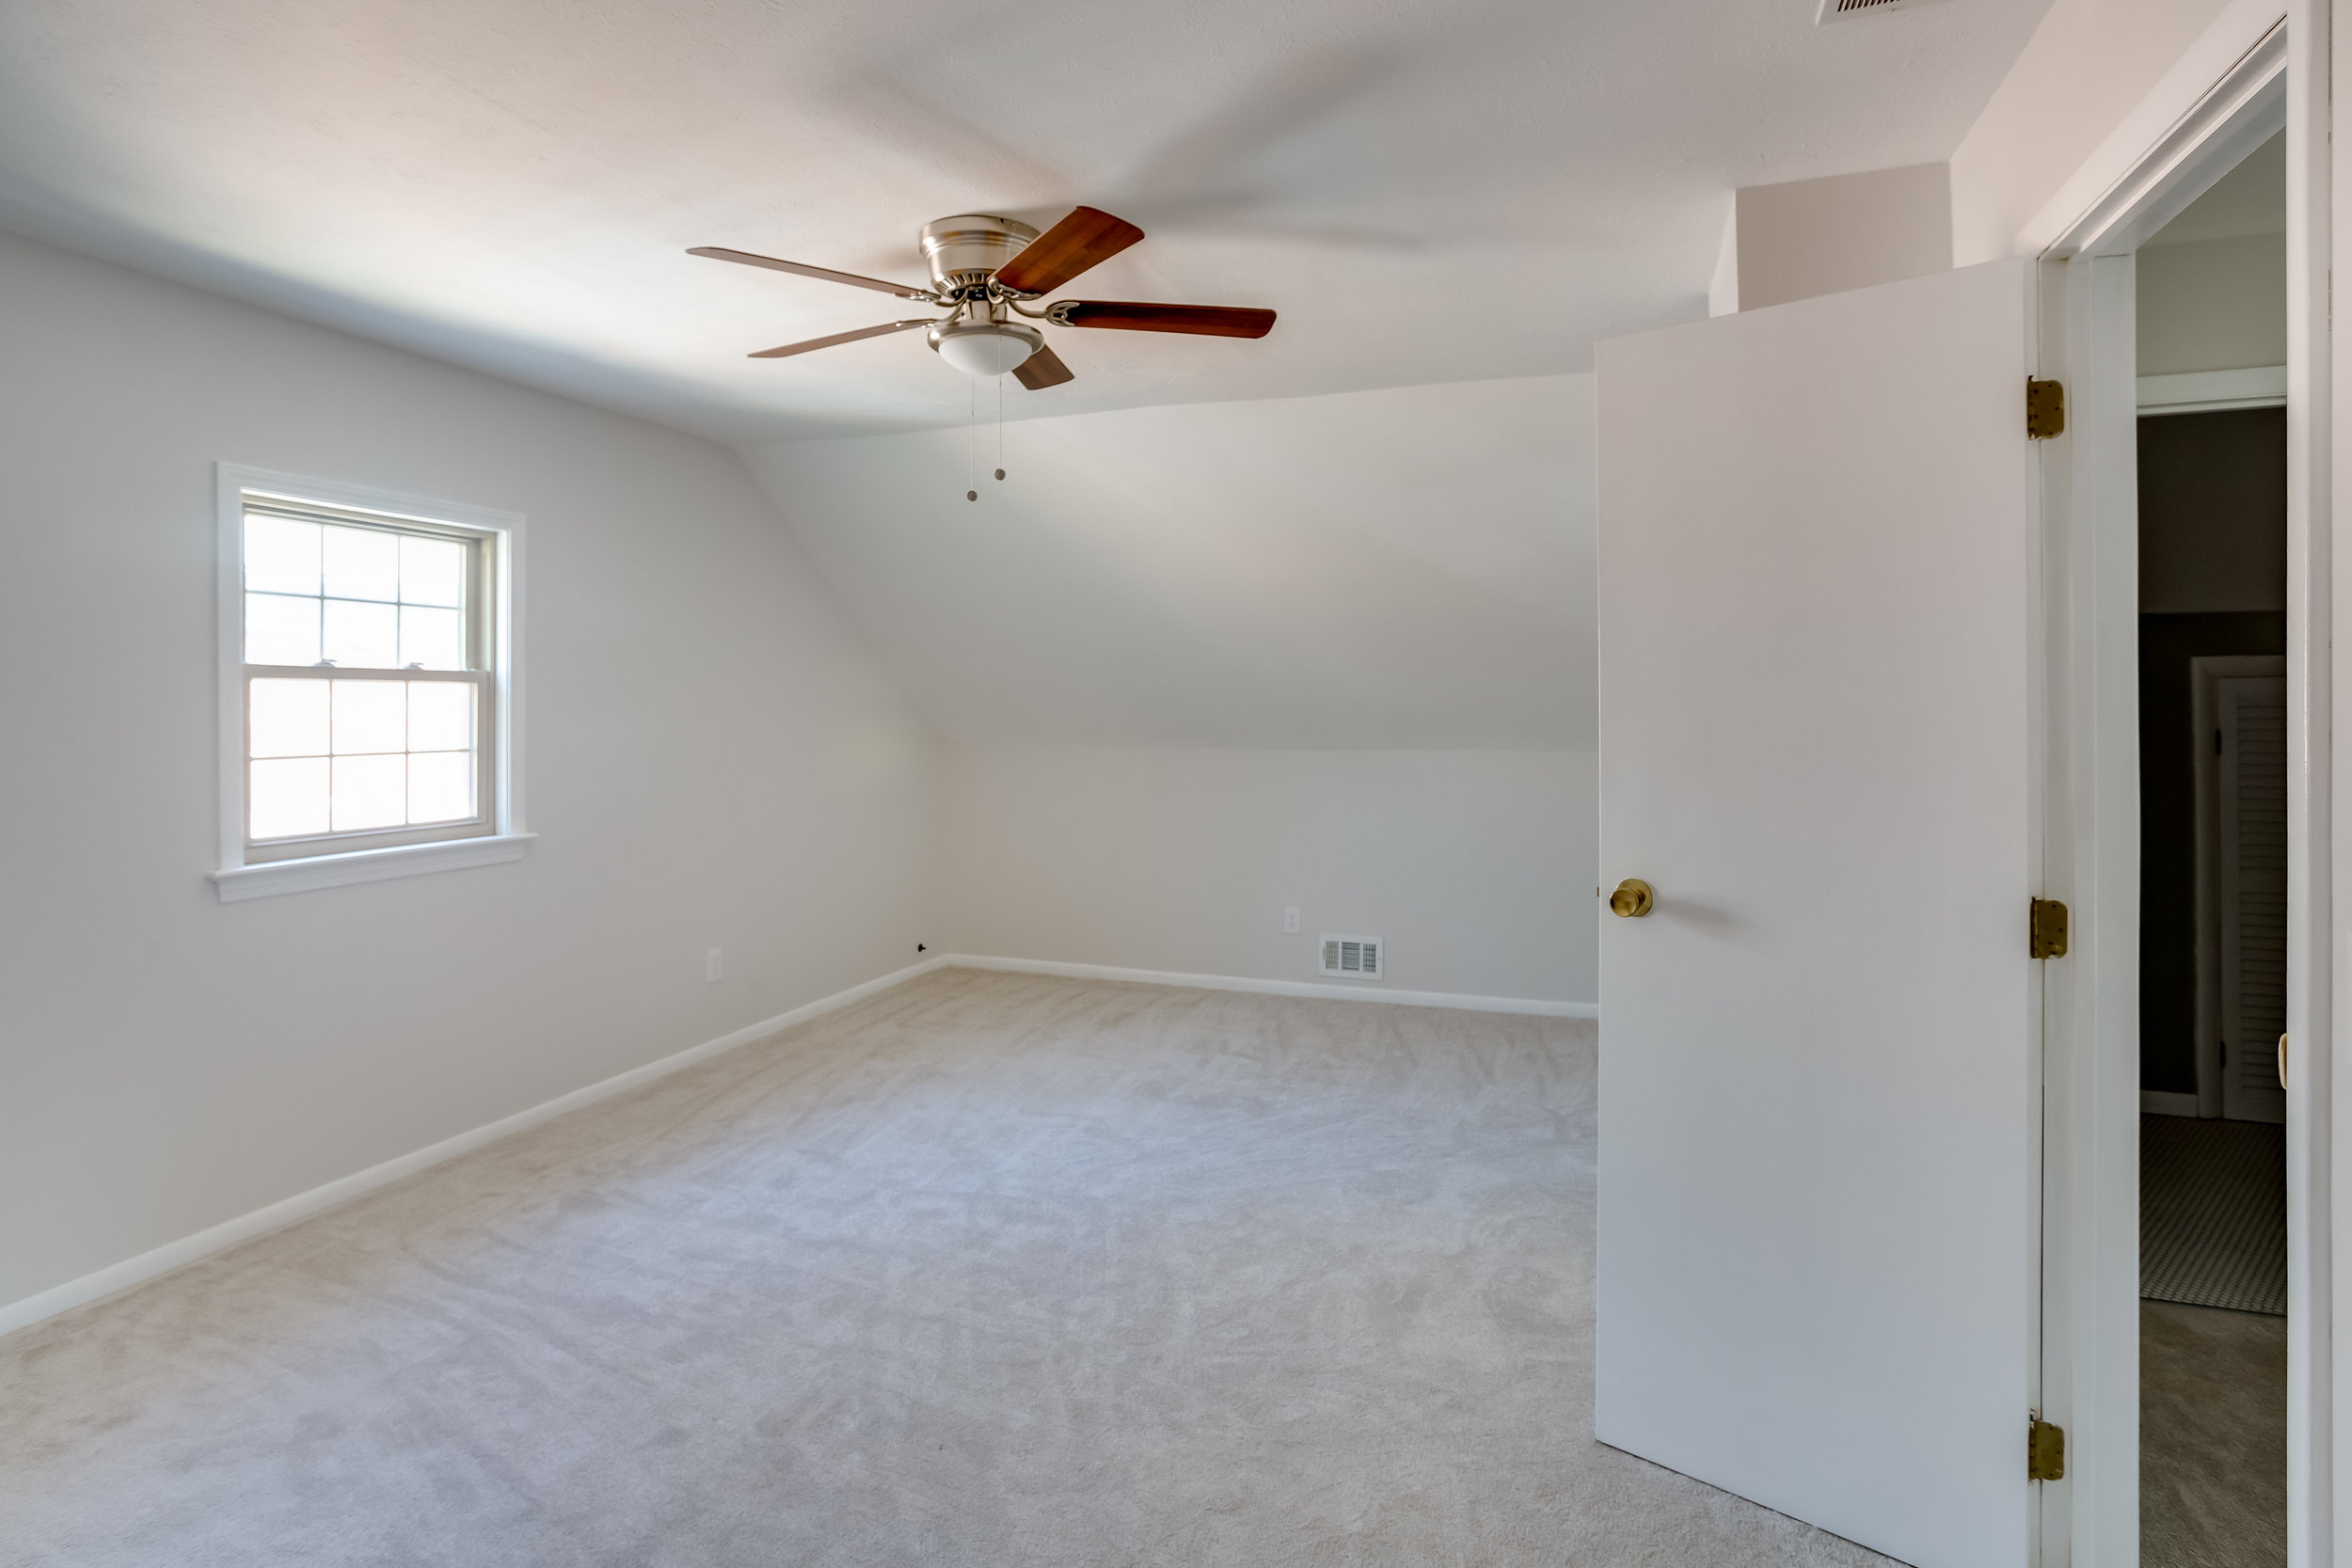 After, the walls are smooth and painted a neutral color, the carpet is new and a modern ceiling fan was installed.